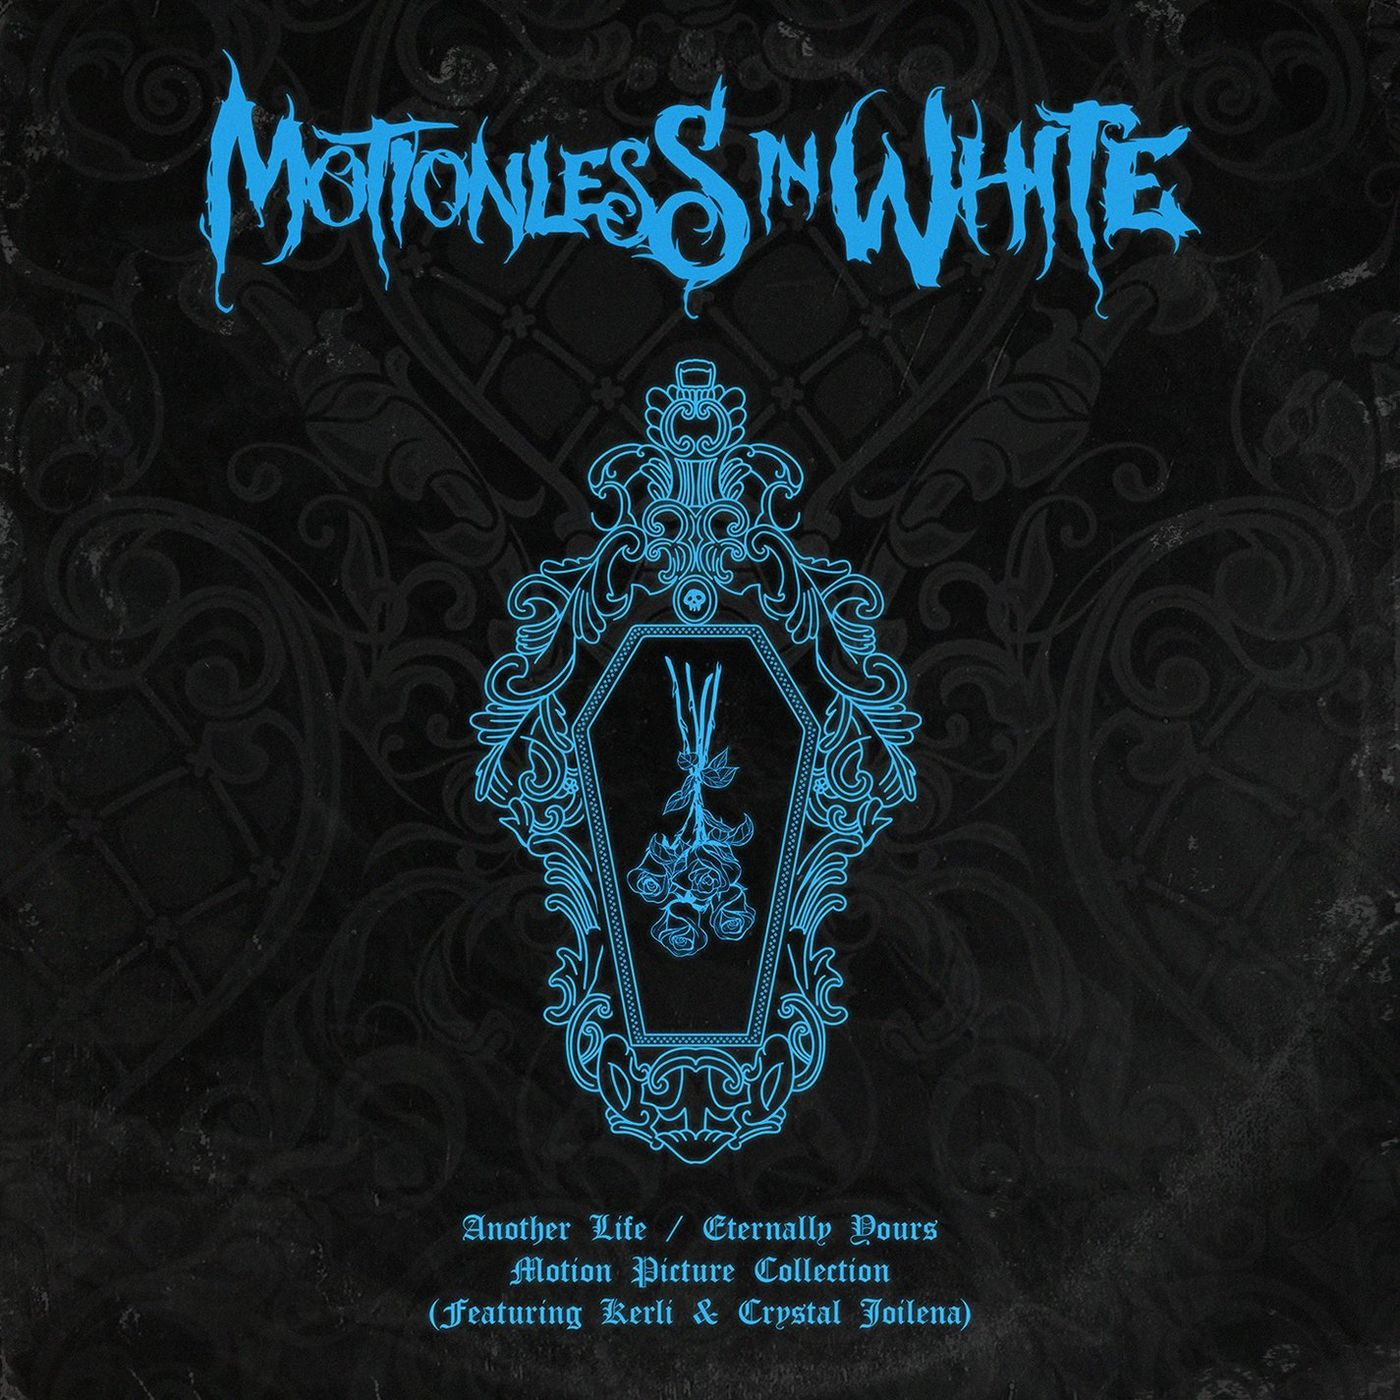 Motionless In White - Another Life / Eternally Yours: Motion Picture Collection [EP] (2020)